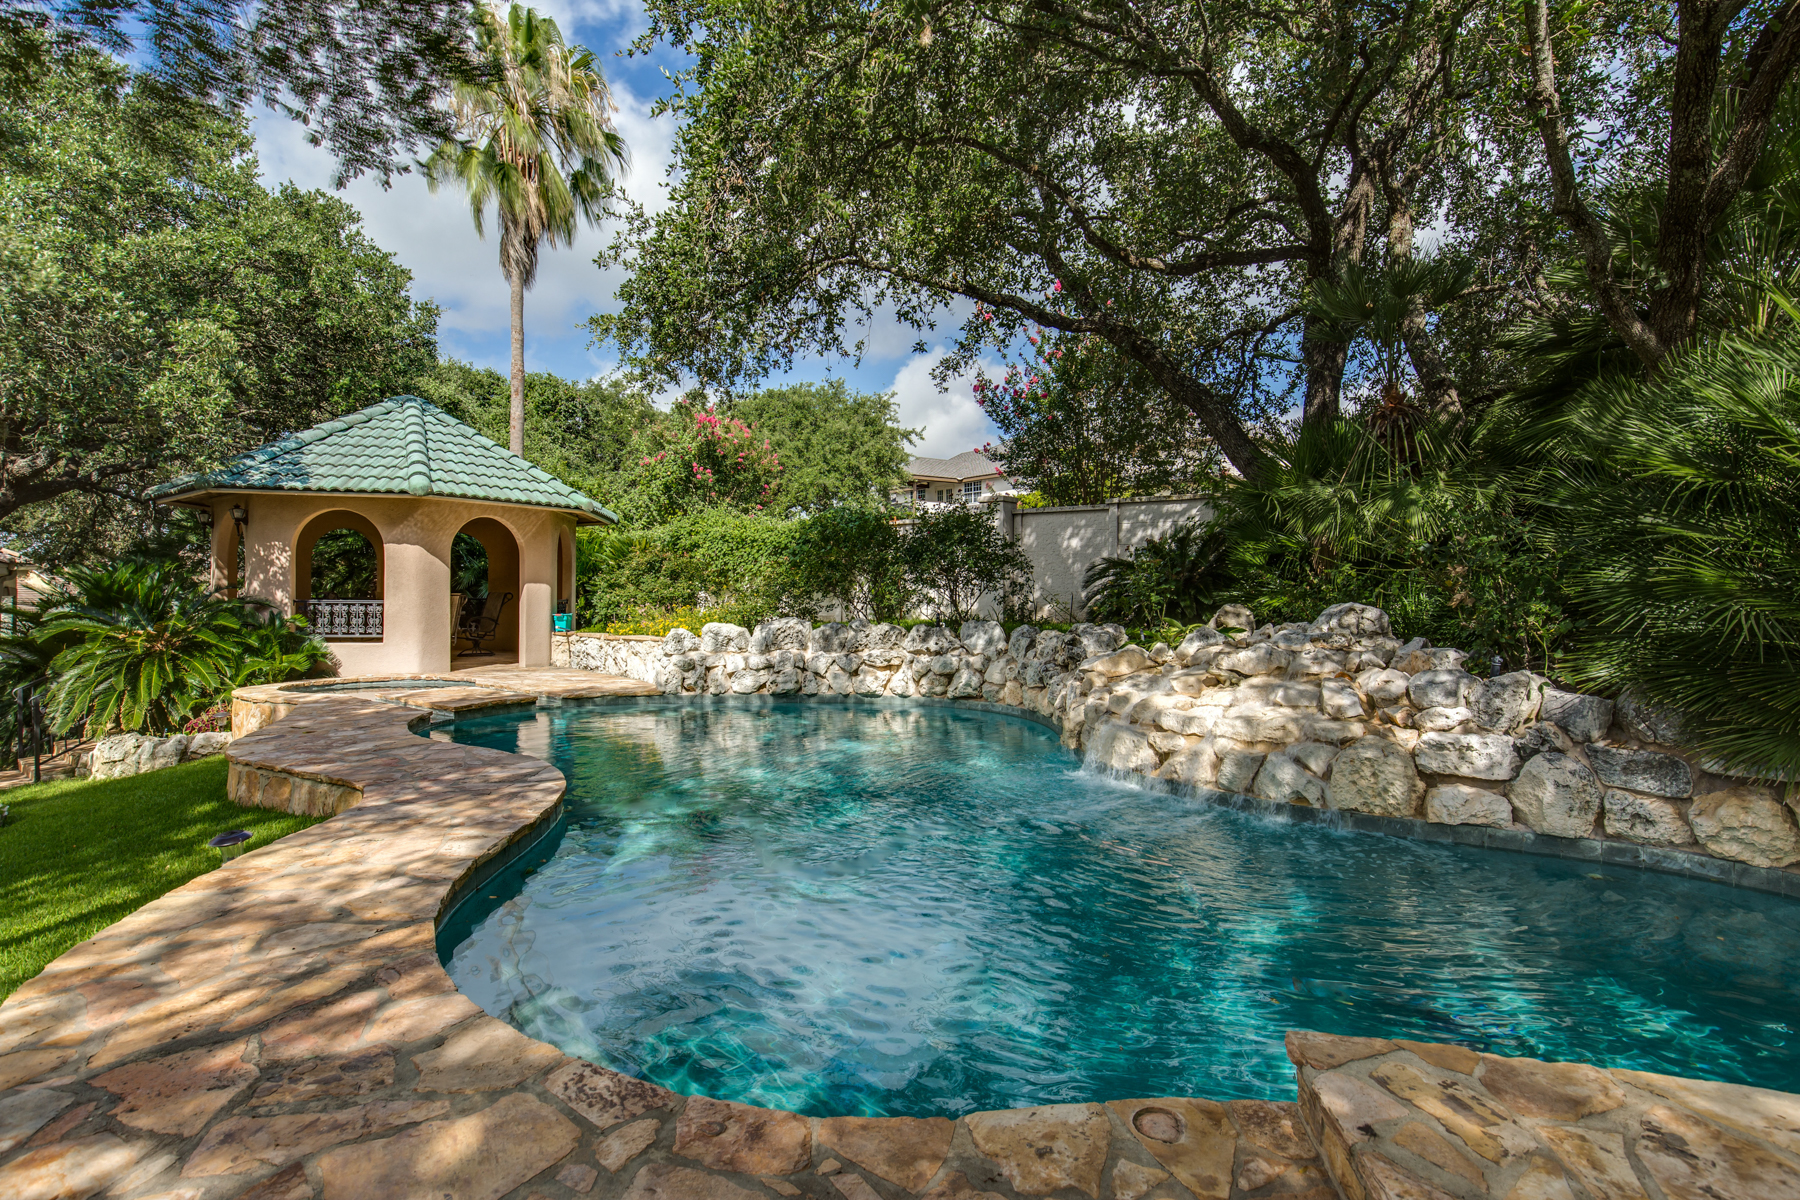 Additional photo for property listing at Stunning Villa in Greystone Country Estates 19122 Nature Oaks San Antonio, Texas 78258 Estados Unidos